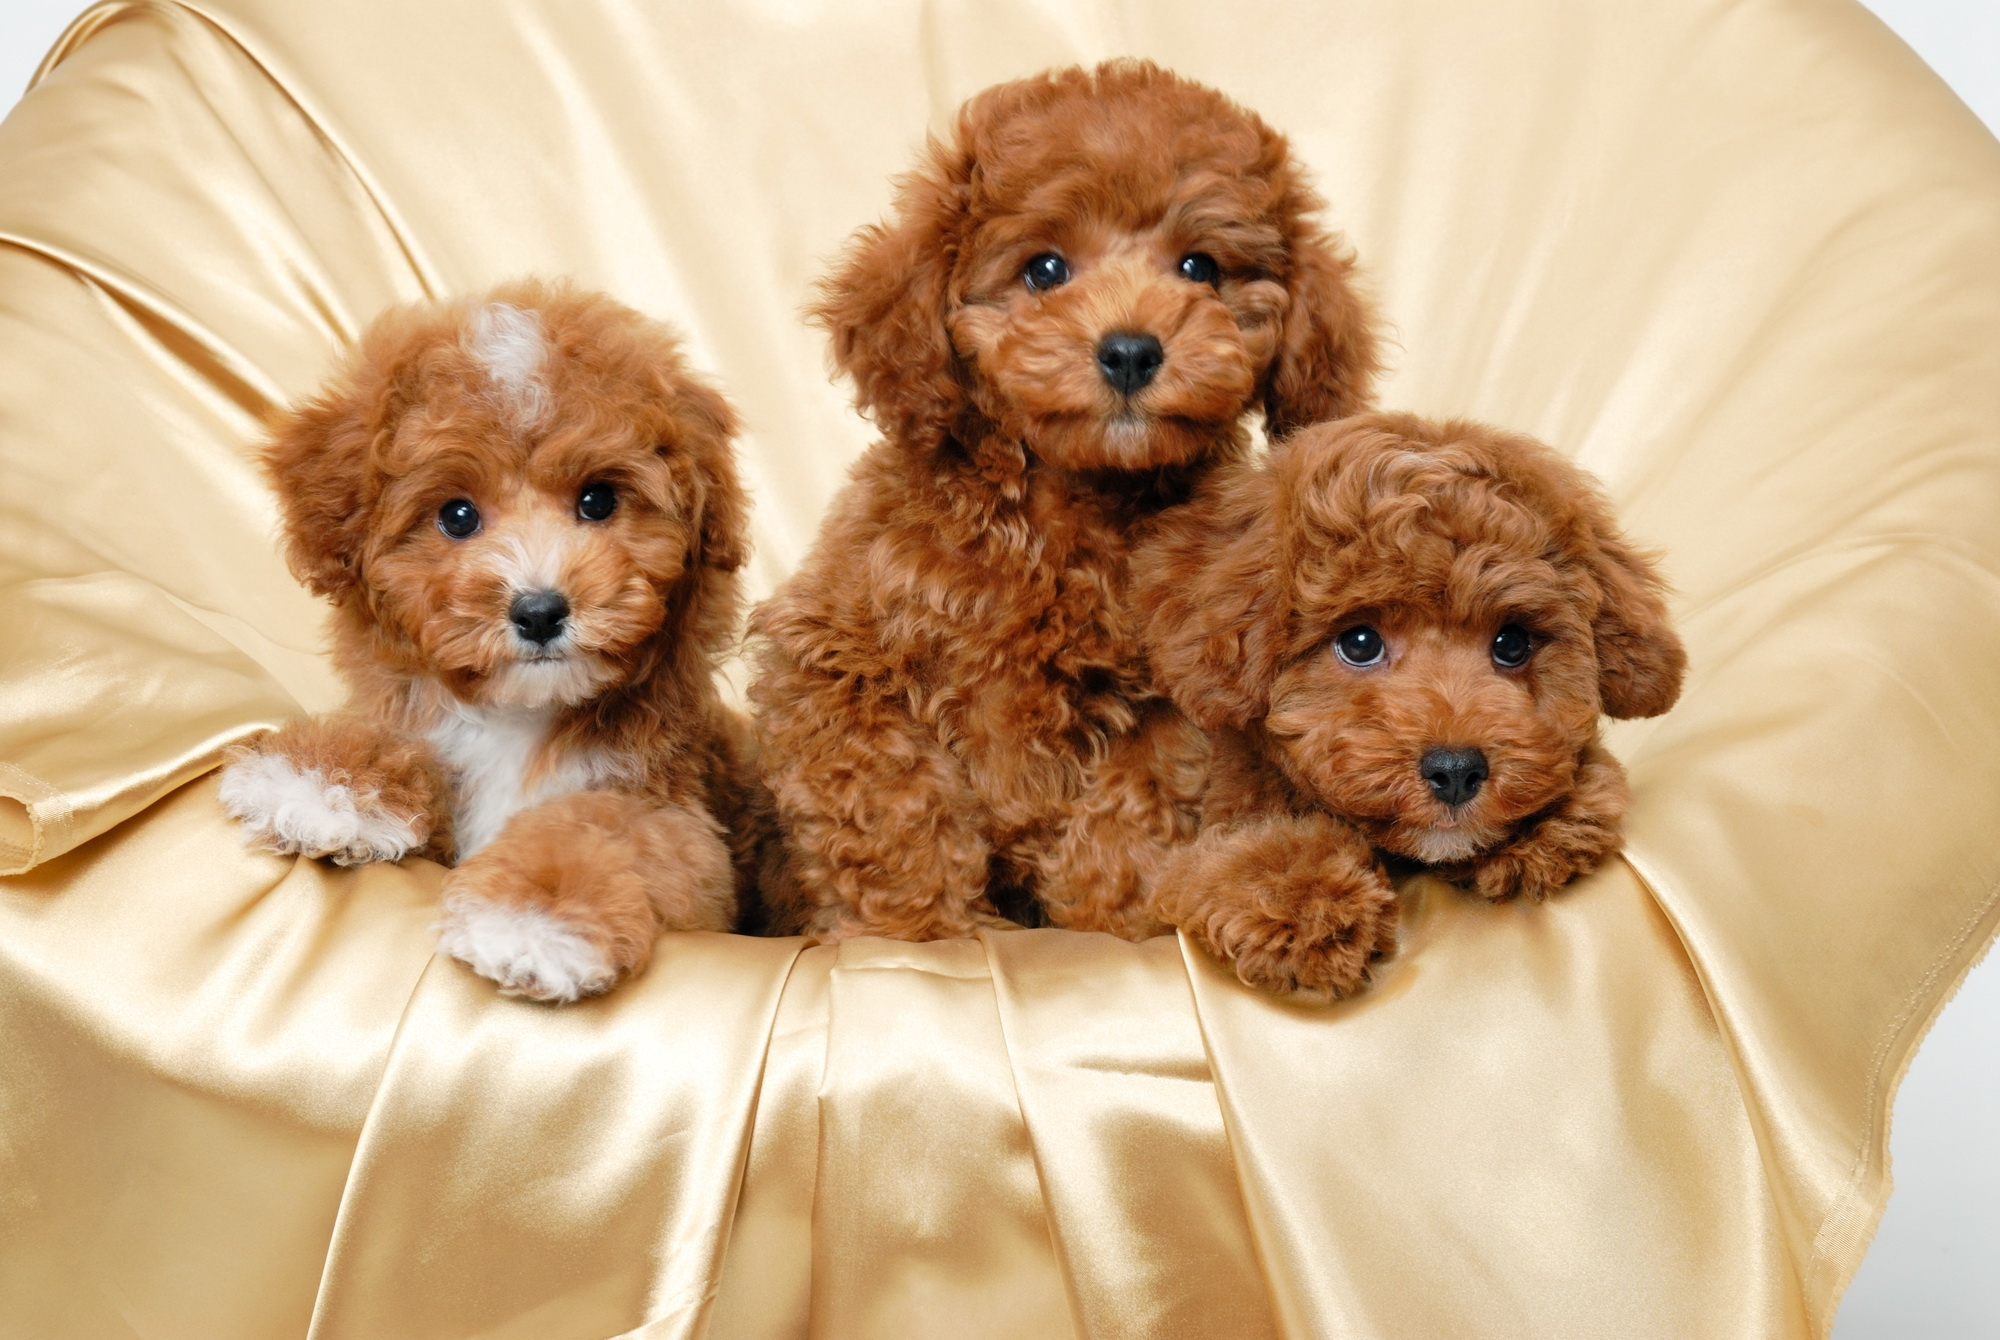 141809 download wallpaper Animals, To Lie Down, Lie, Small, Three, Puppies screensavers and pictures for free